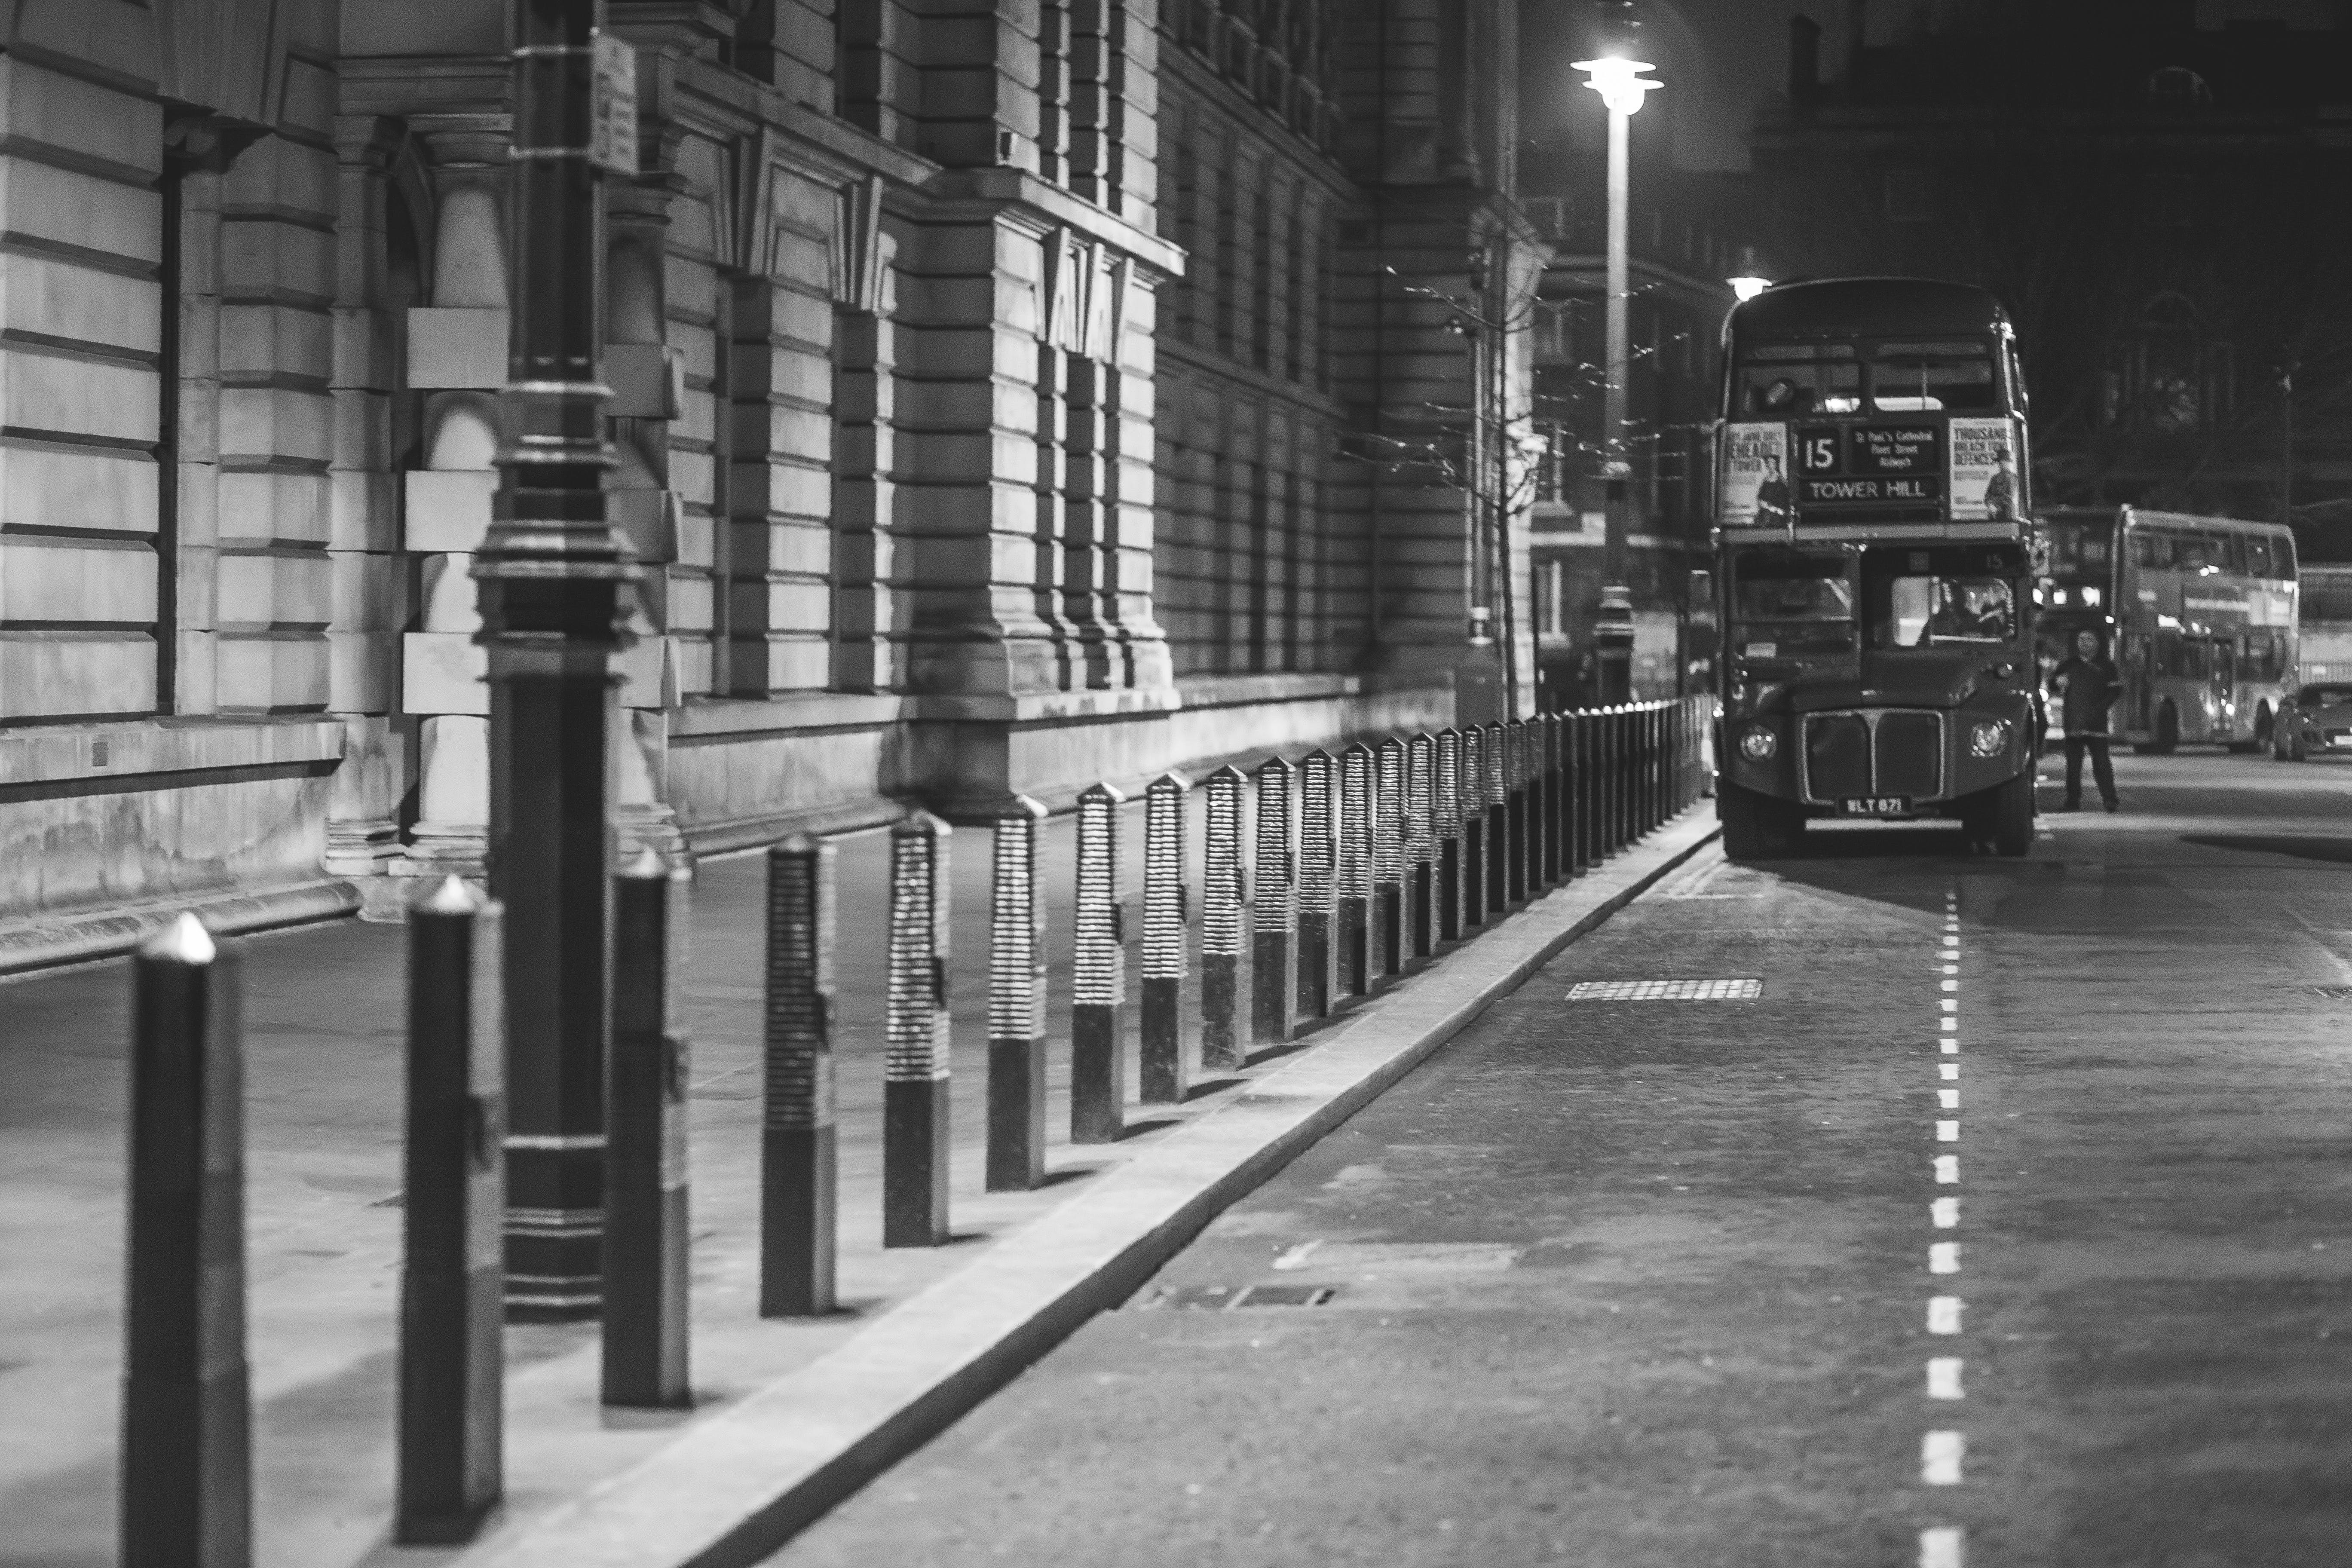 Grayscale Photography of Double Deck Bus on Road